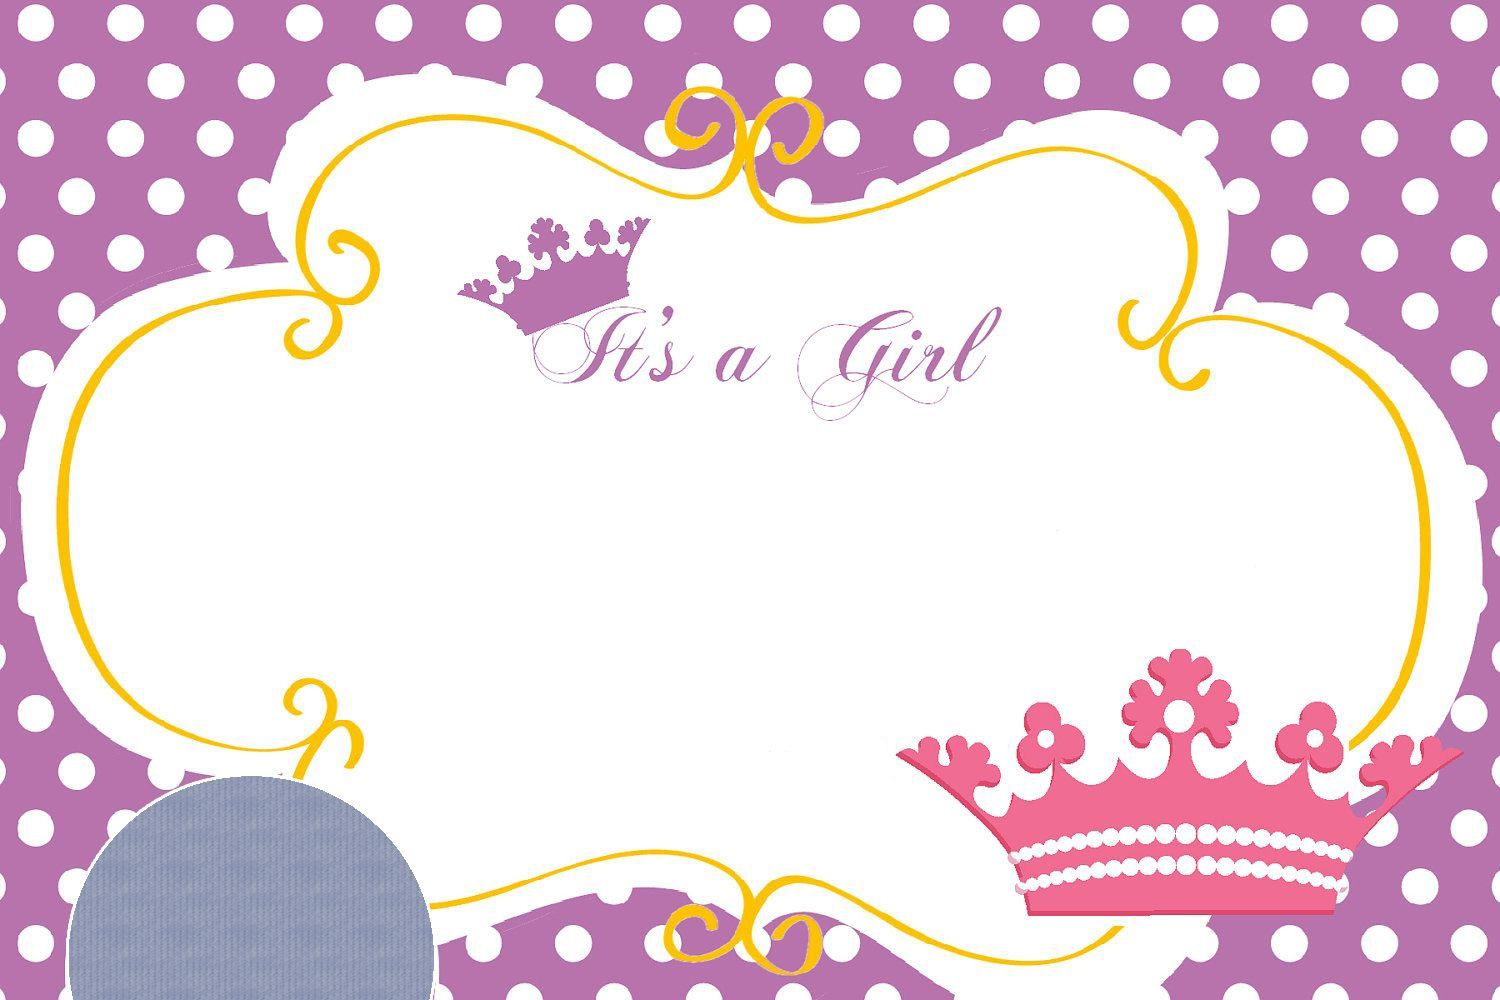 002 Unique Princes Baby Shower Invitation Template Sample  Templates Little Royal Red DisneyFull